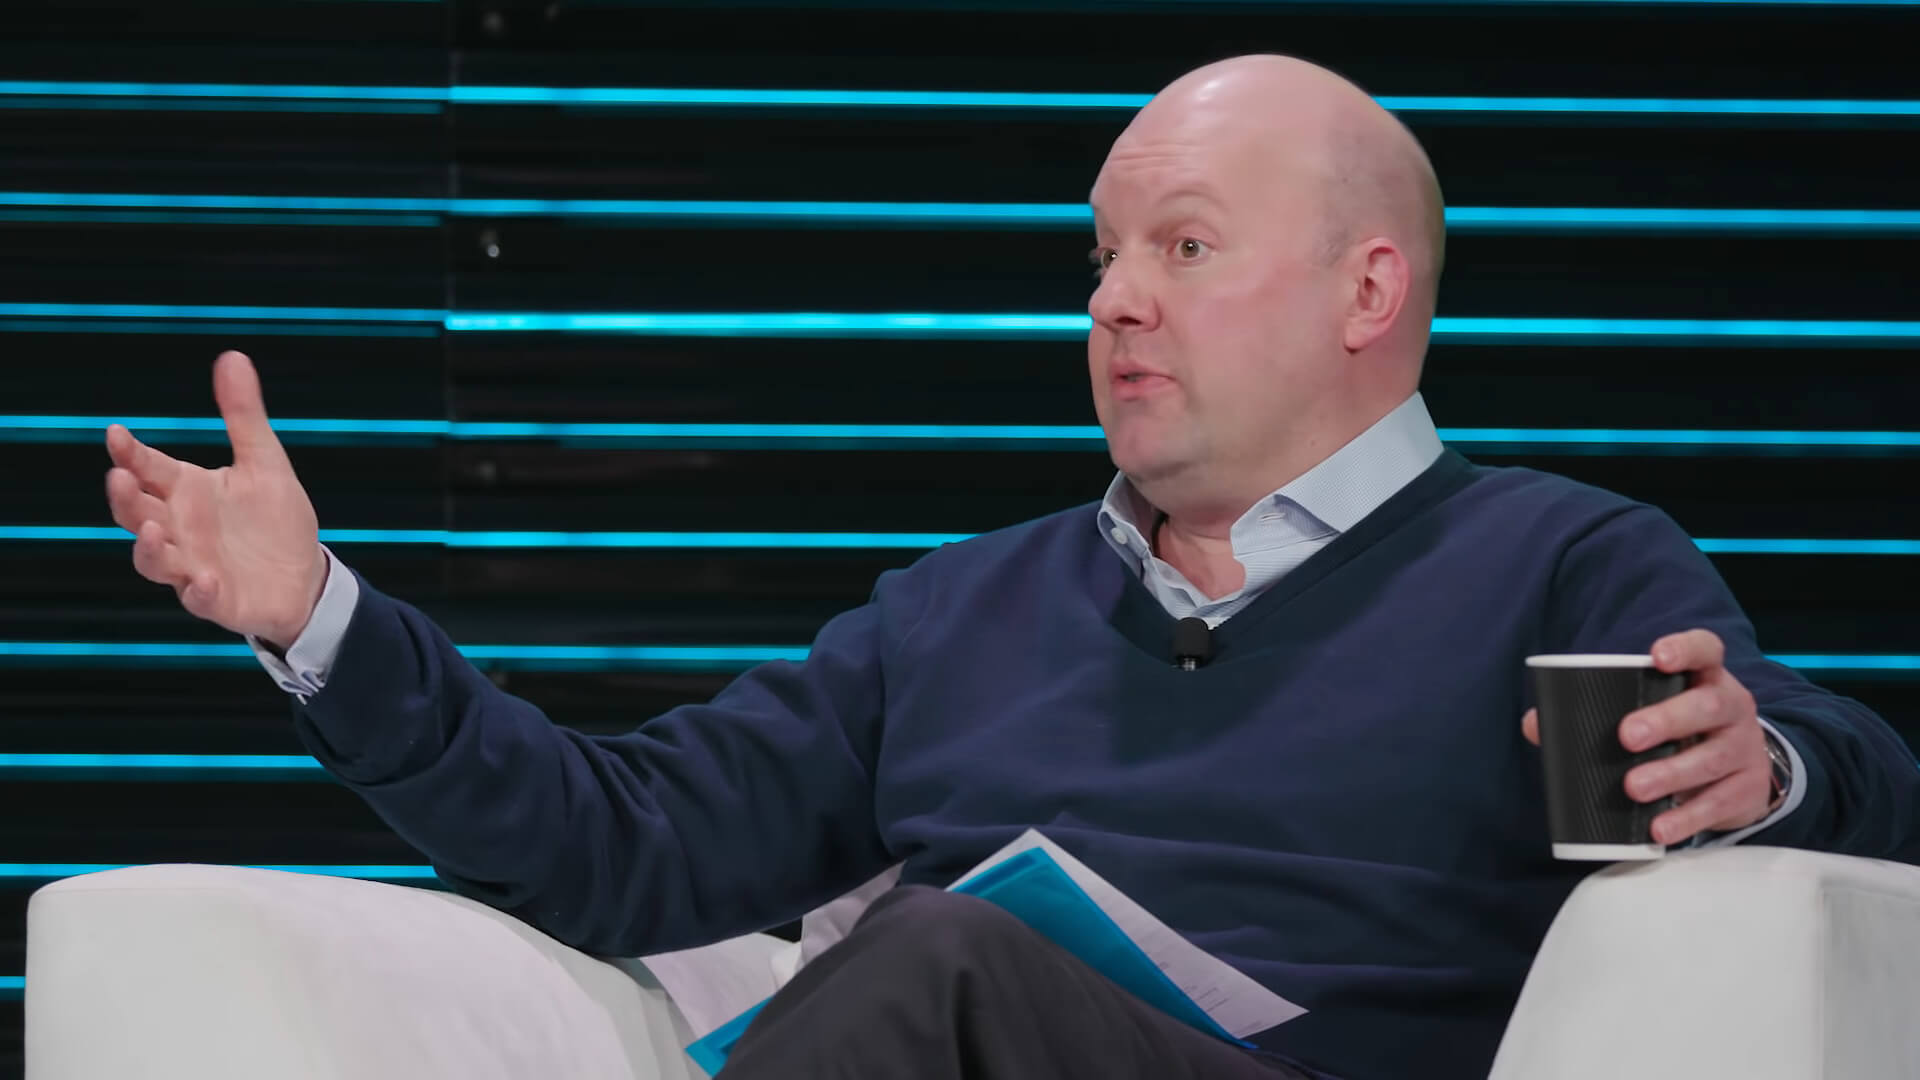 Crypto Elephant Changes The Way The World Works - Marc Andreessen